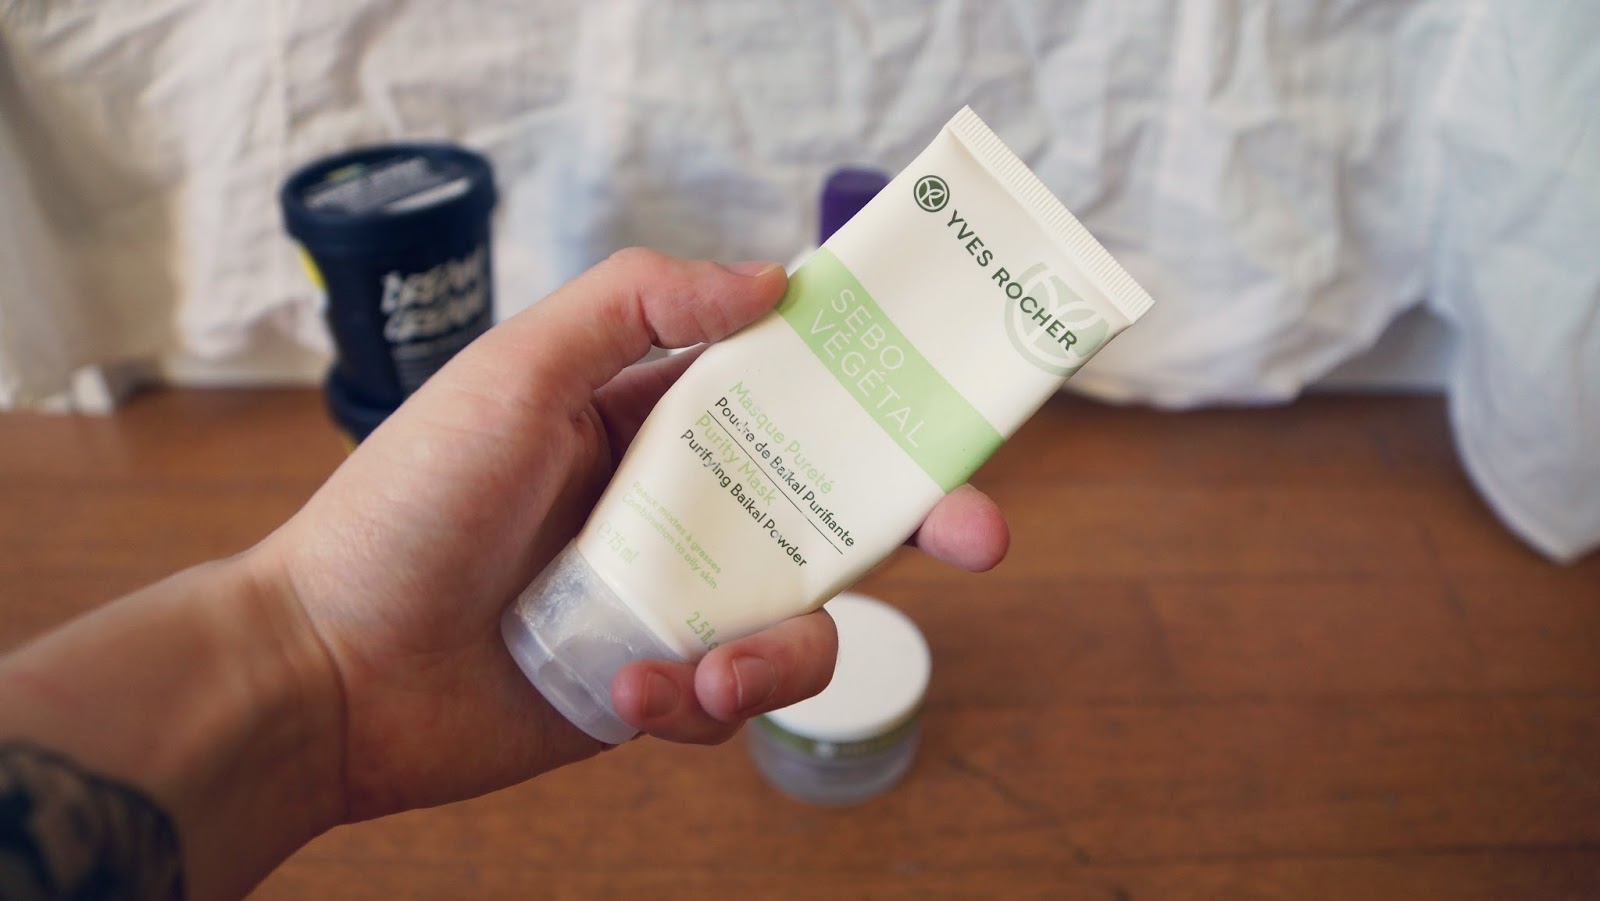 Yves Rocher Purifying Clay Mask Review